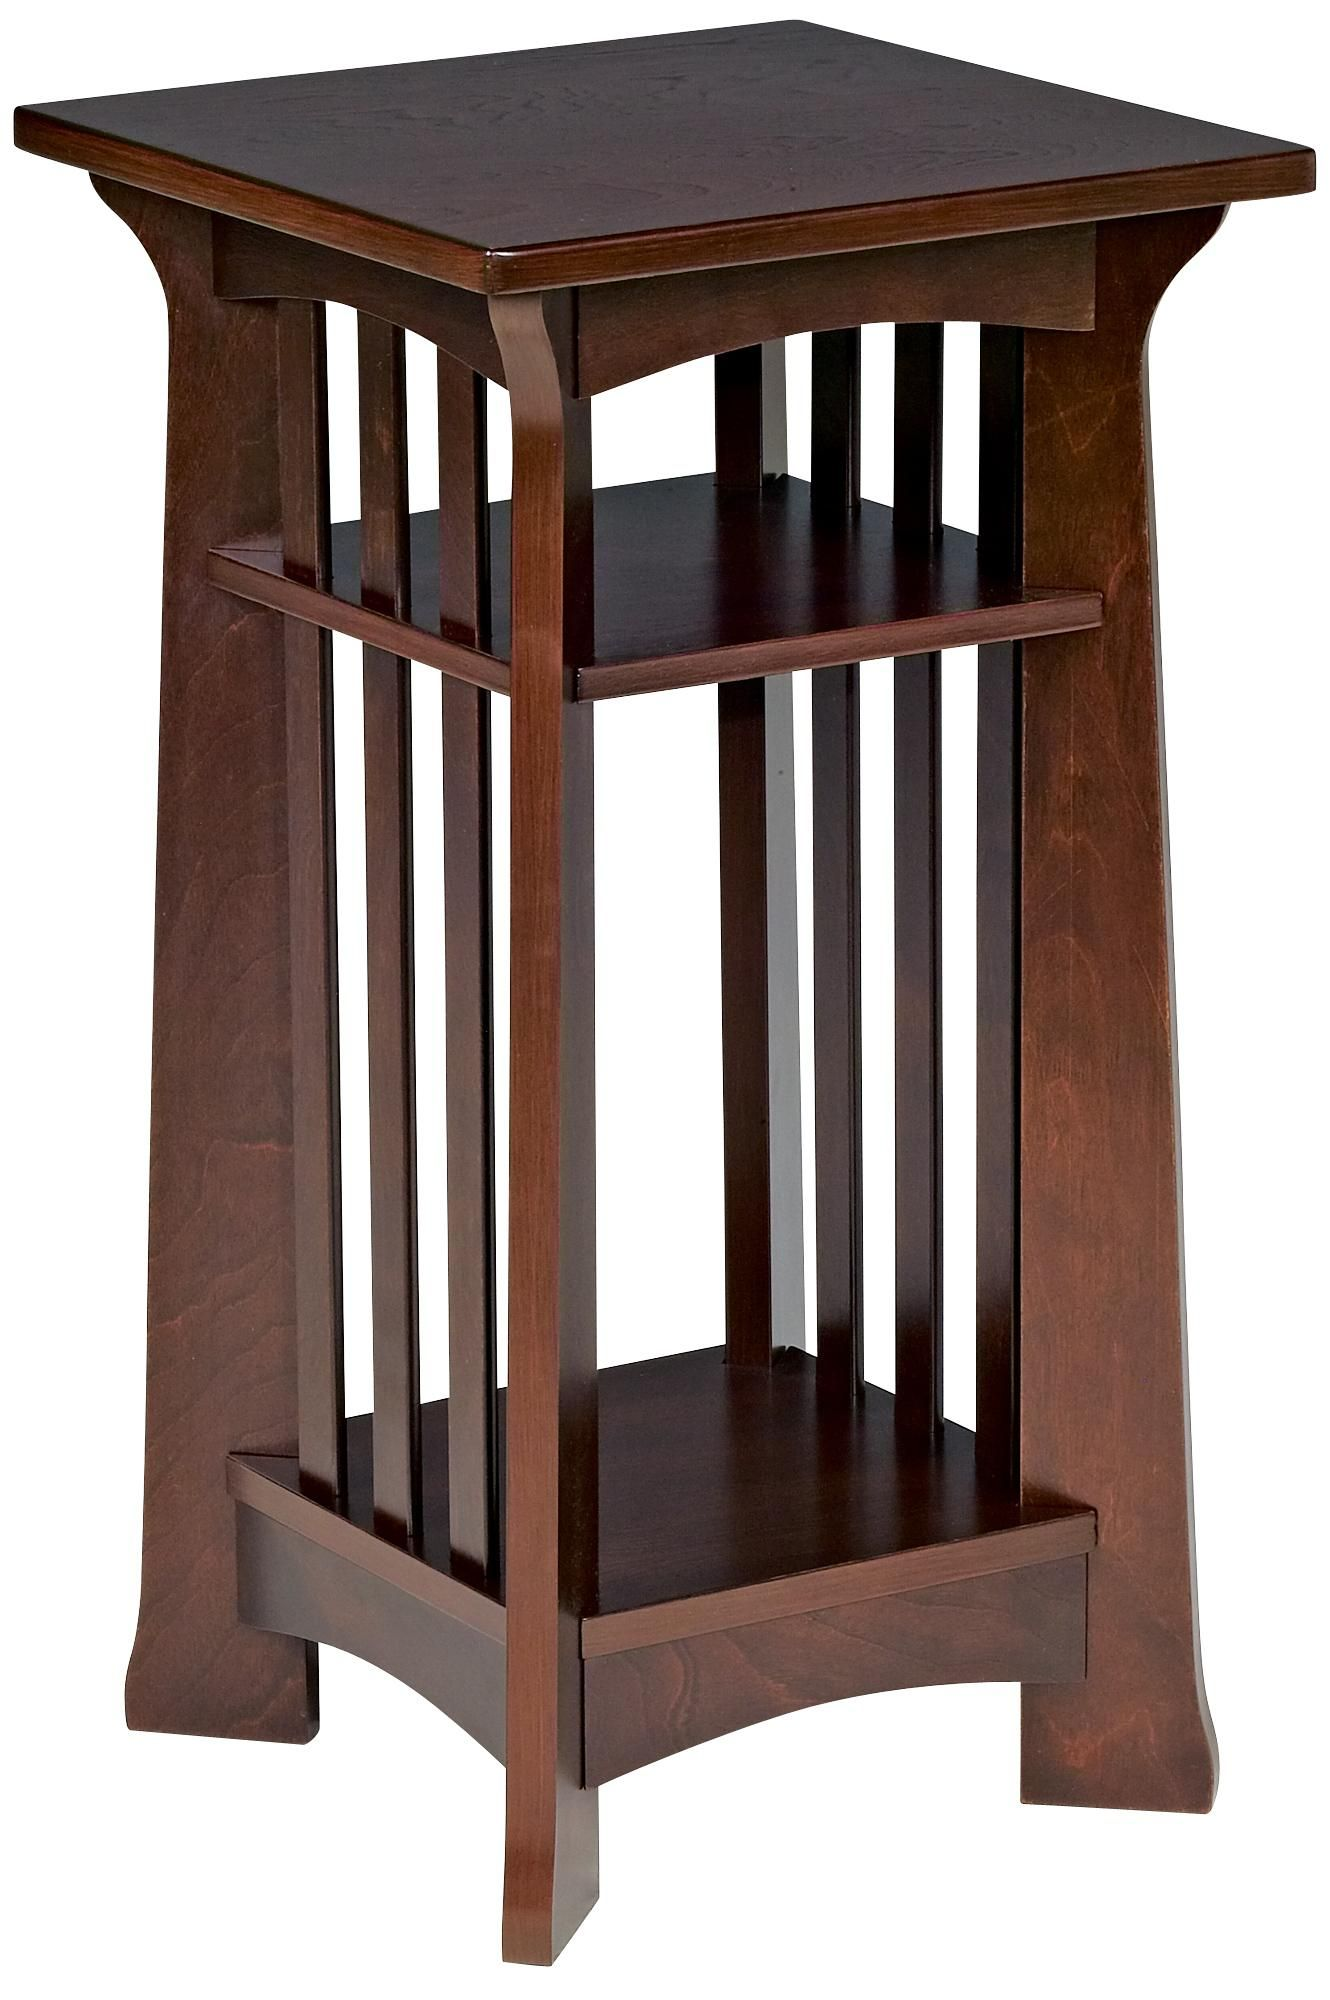 Edgewater Collection Espresso Finish Plant Stand - Lampspluscom